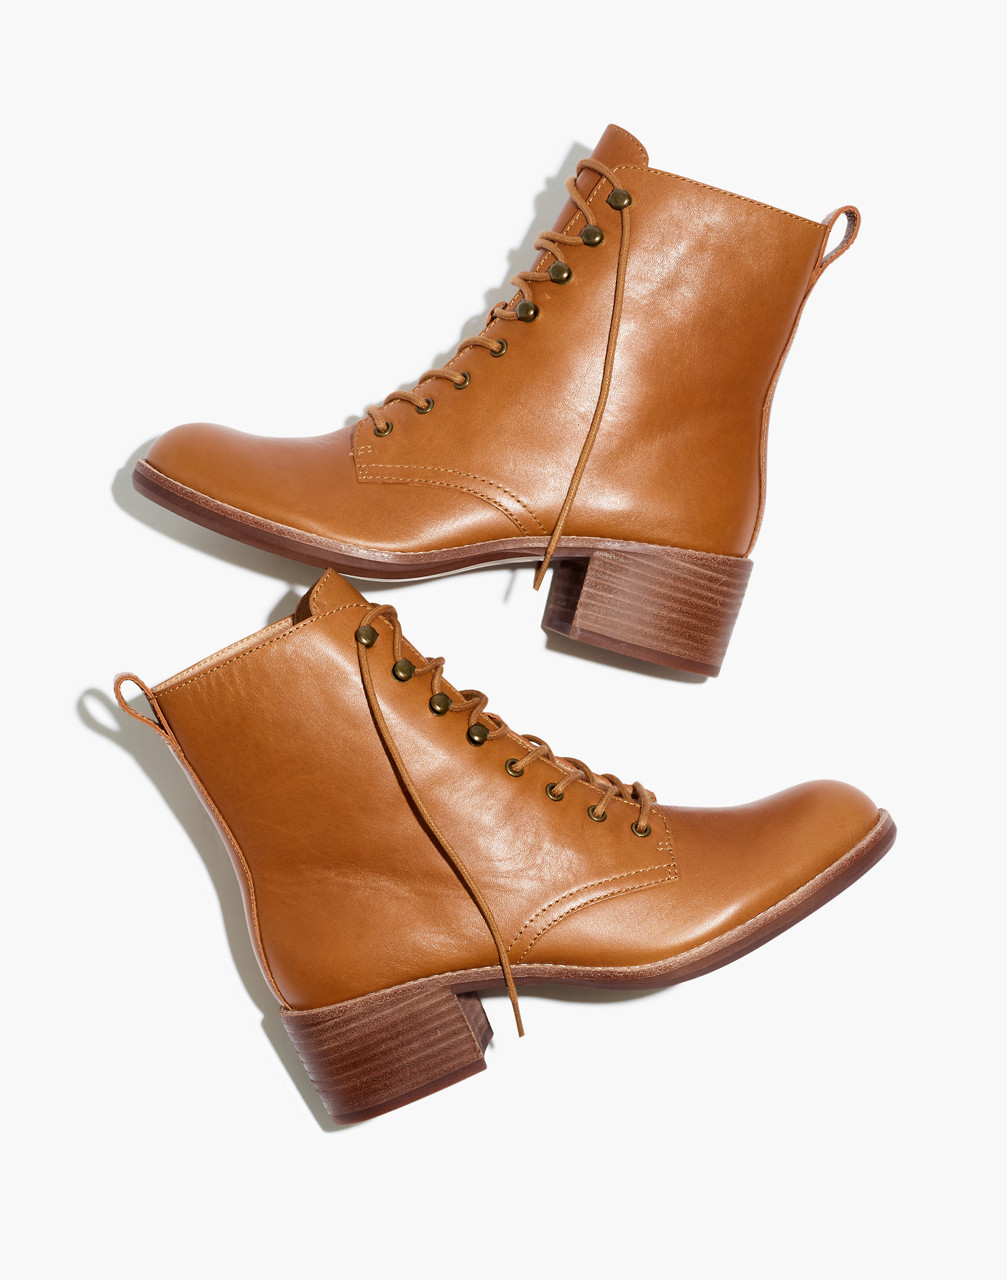 70s Shoes, Platforms, Boots, Heels | 1970s Shoes The Patti Lace-Up Boot $228.00 AT vintagedancer.com